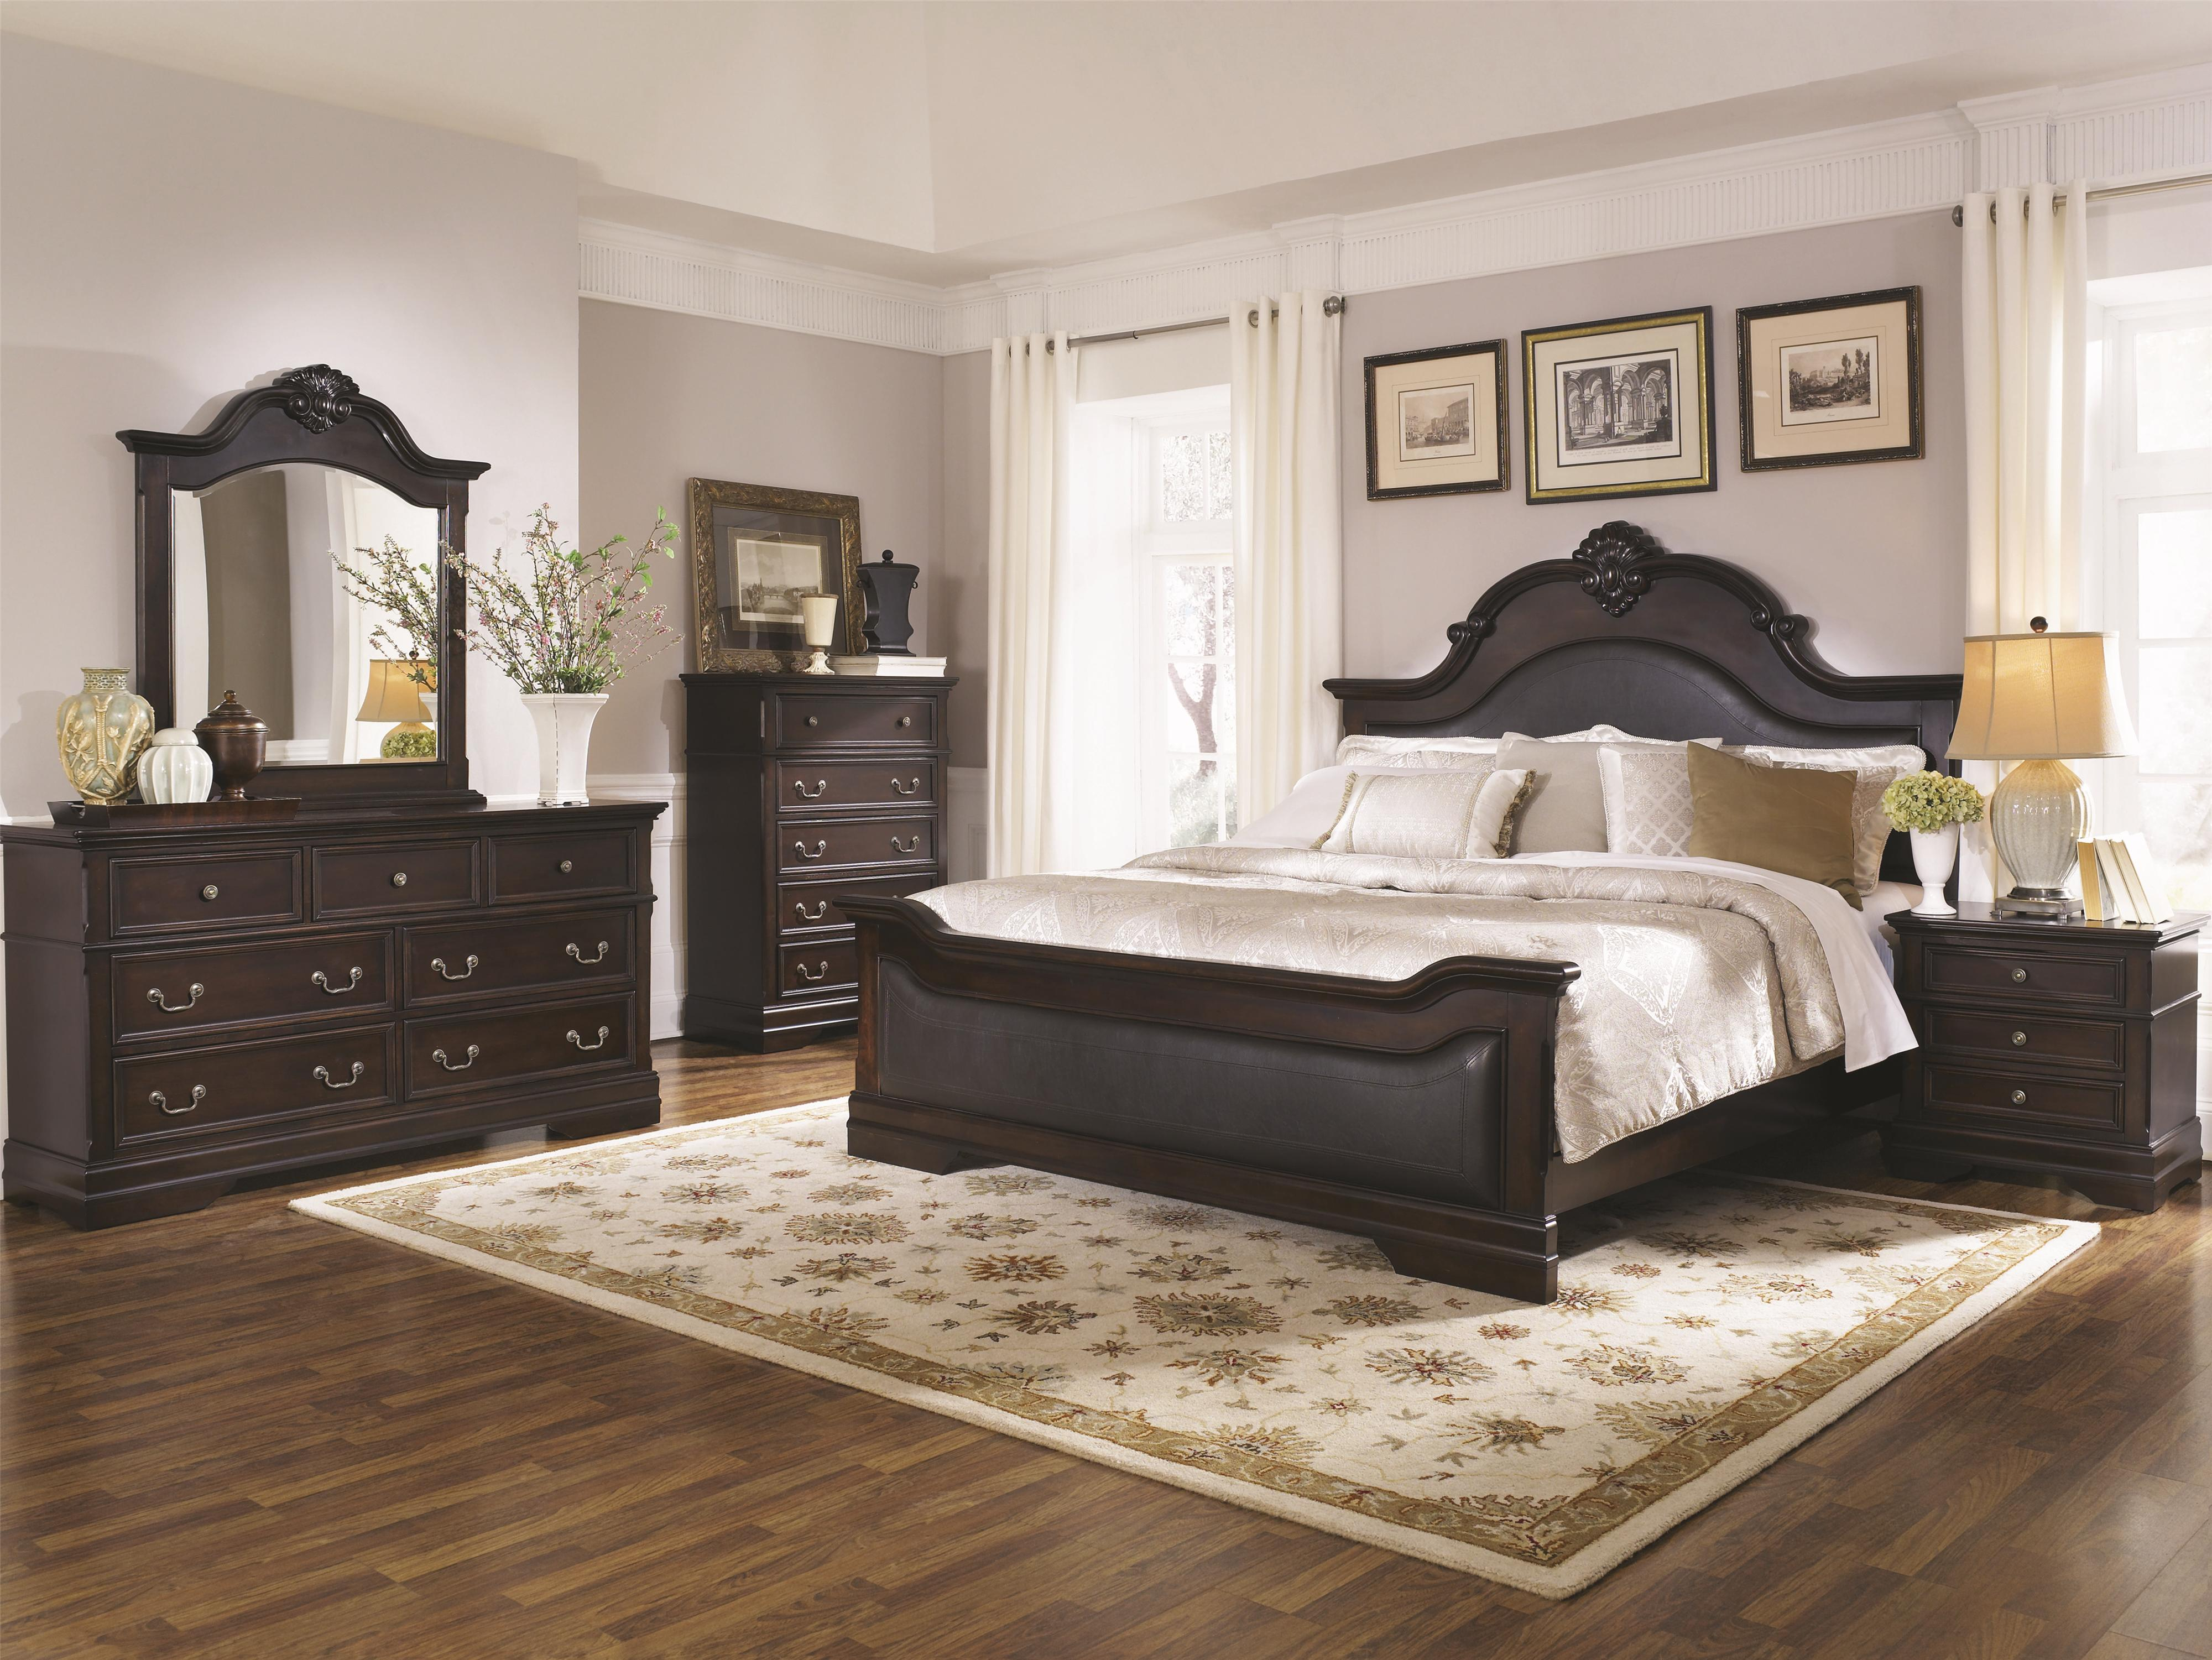 Cambridge King Bedroom Group by Coaster at Beds N Stuff